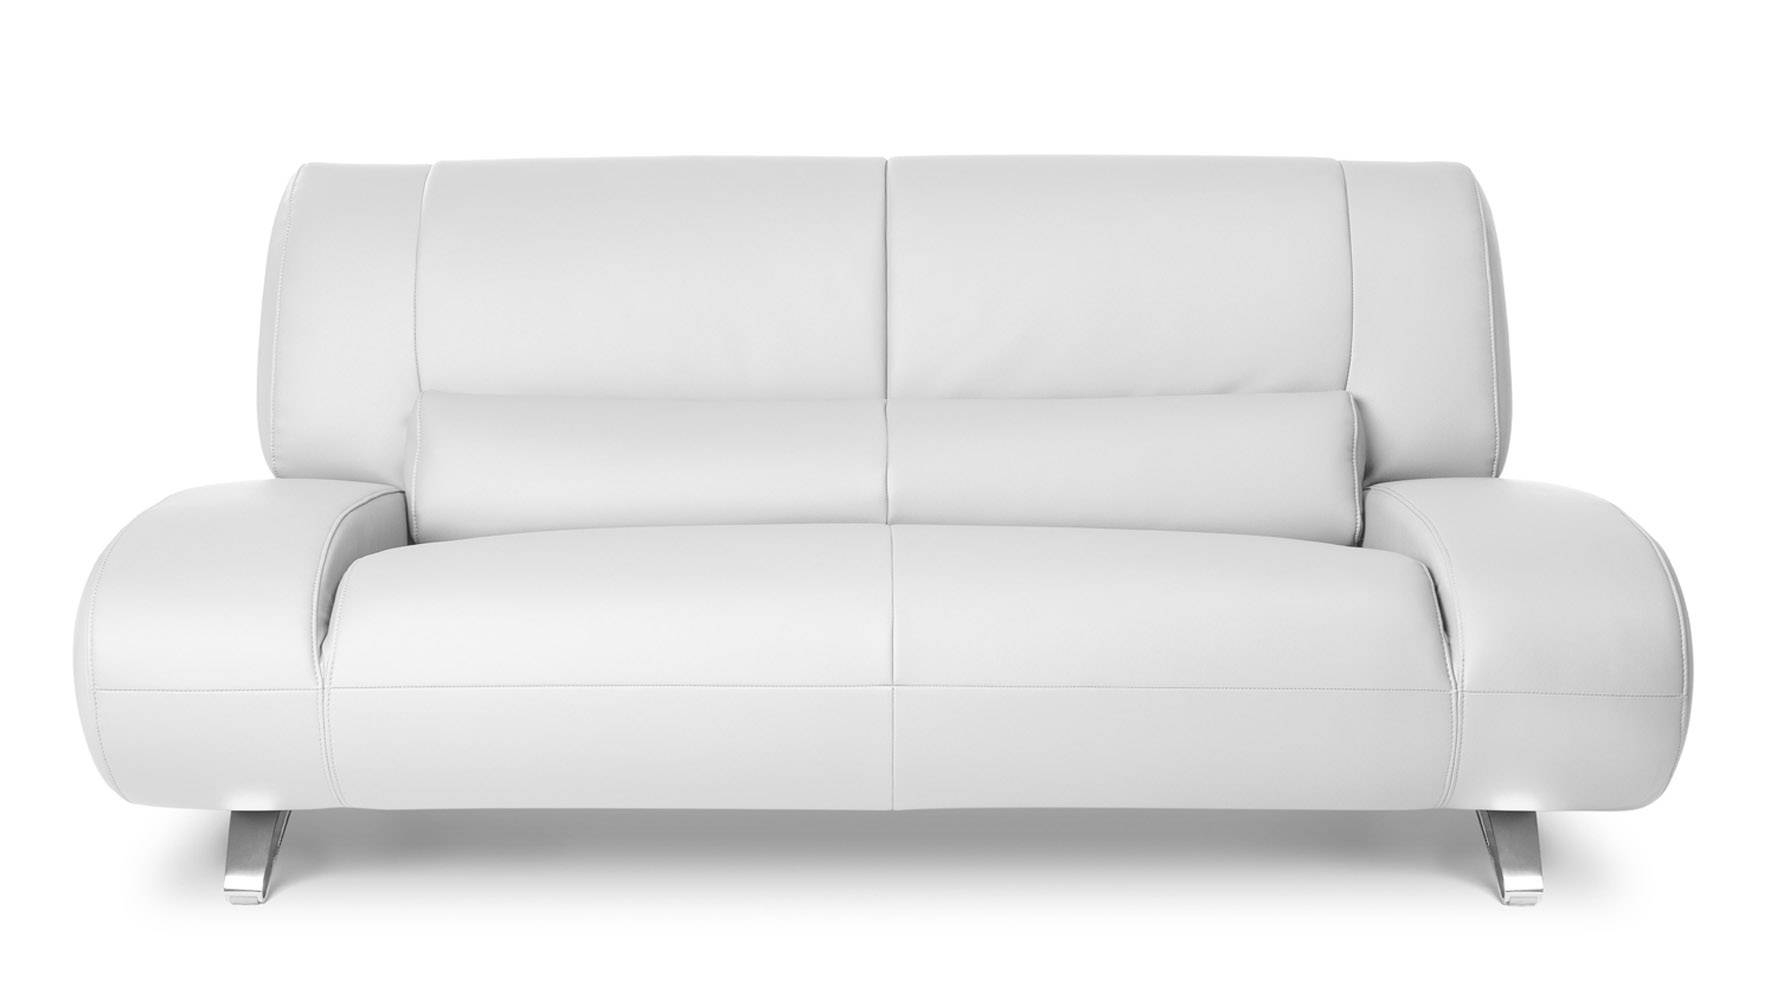 Aspen 2 Seater | Zuri Furniture inside Aspen Leather Sofas (Image 3 of 30)